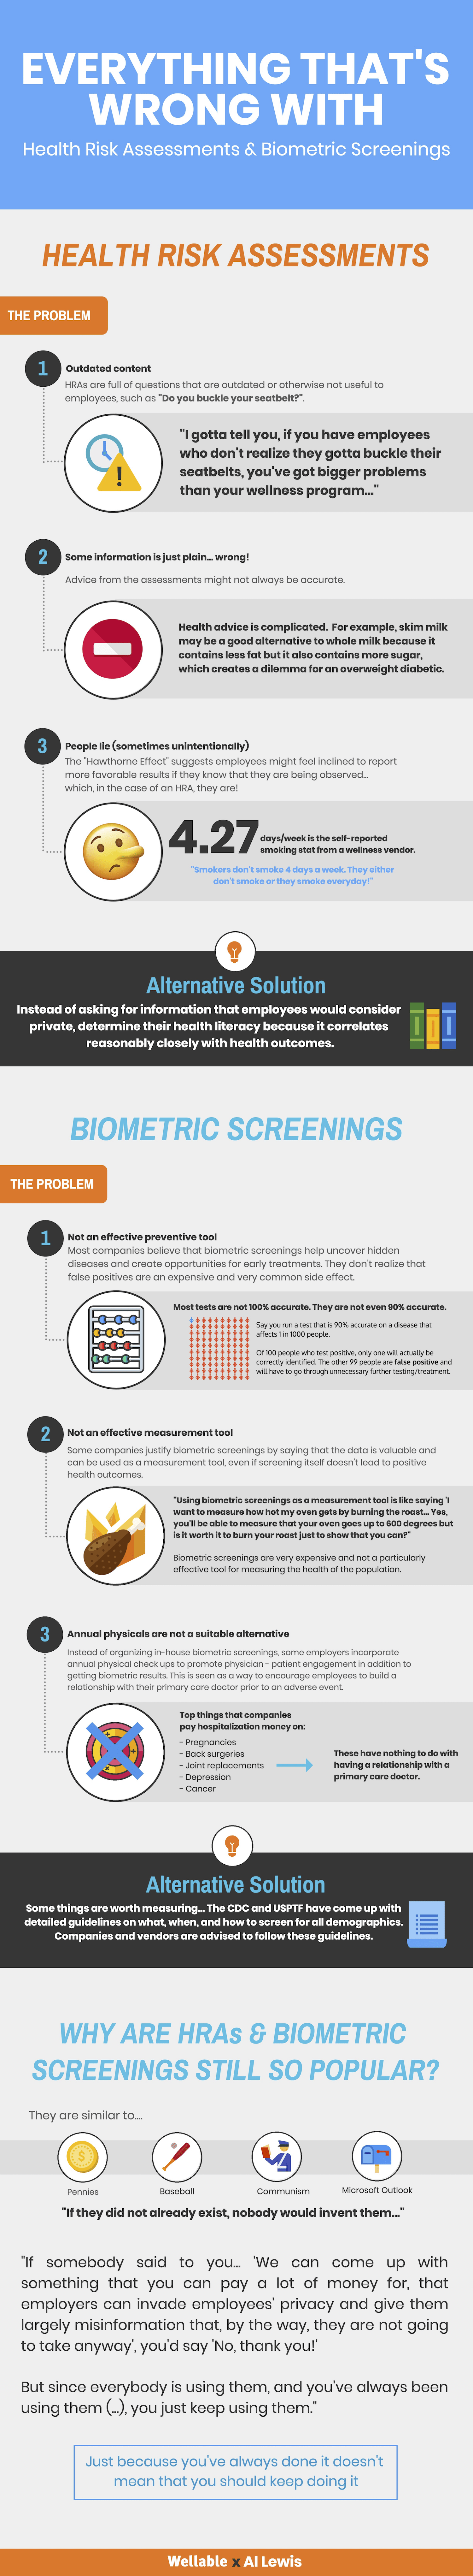 An overview of everything that's wrong with health risk assessments & biometric screenings